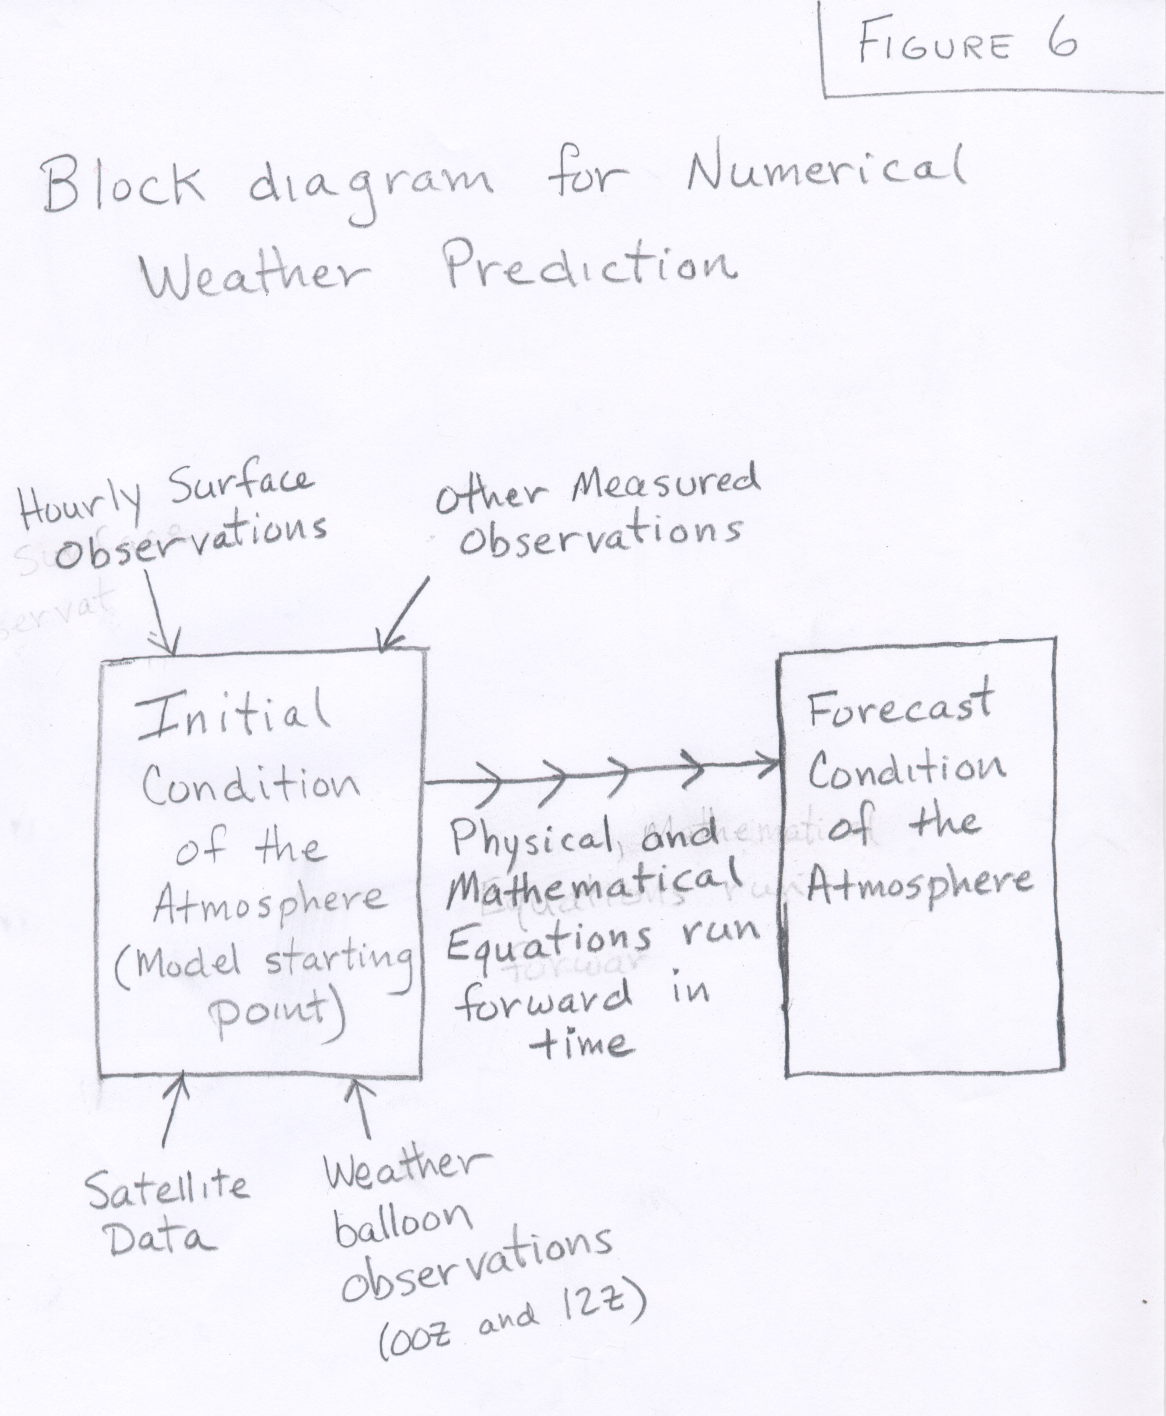 Index Of Students Courselinks Spring08 Atmo336s1 Courses Spring15 Block Diagram Equations Fig6 1022